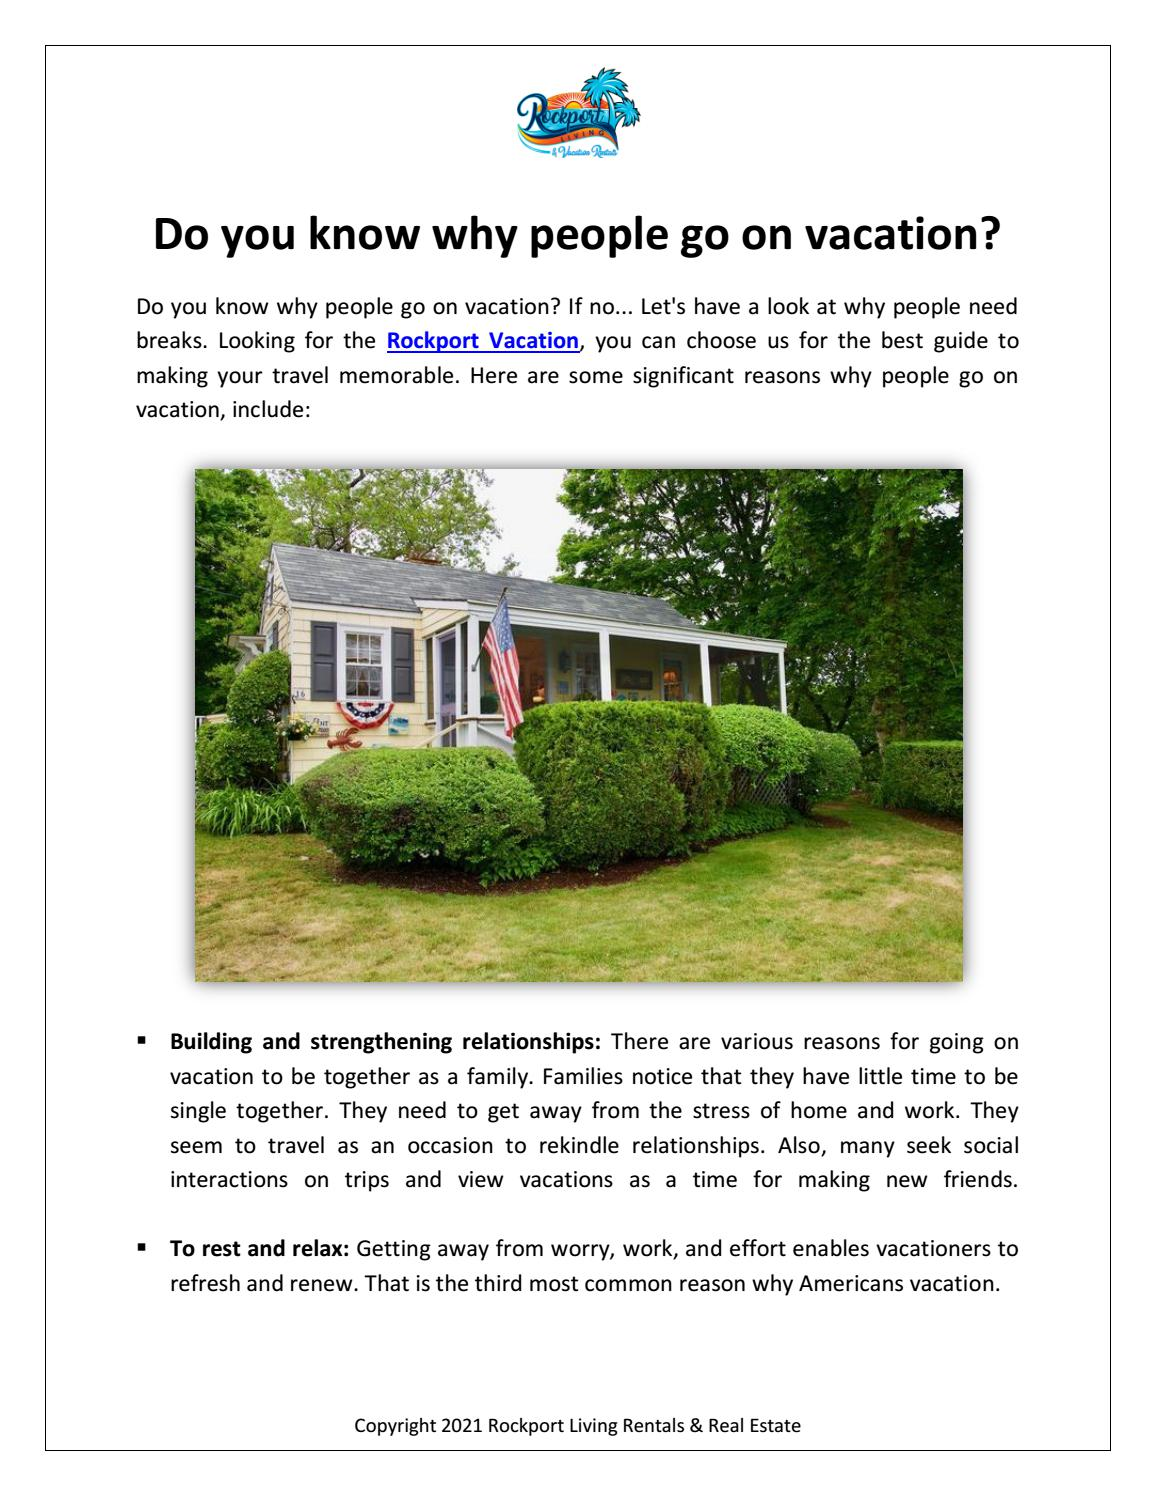 Do you know why people go on vacation?